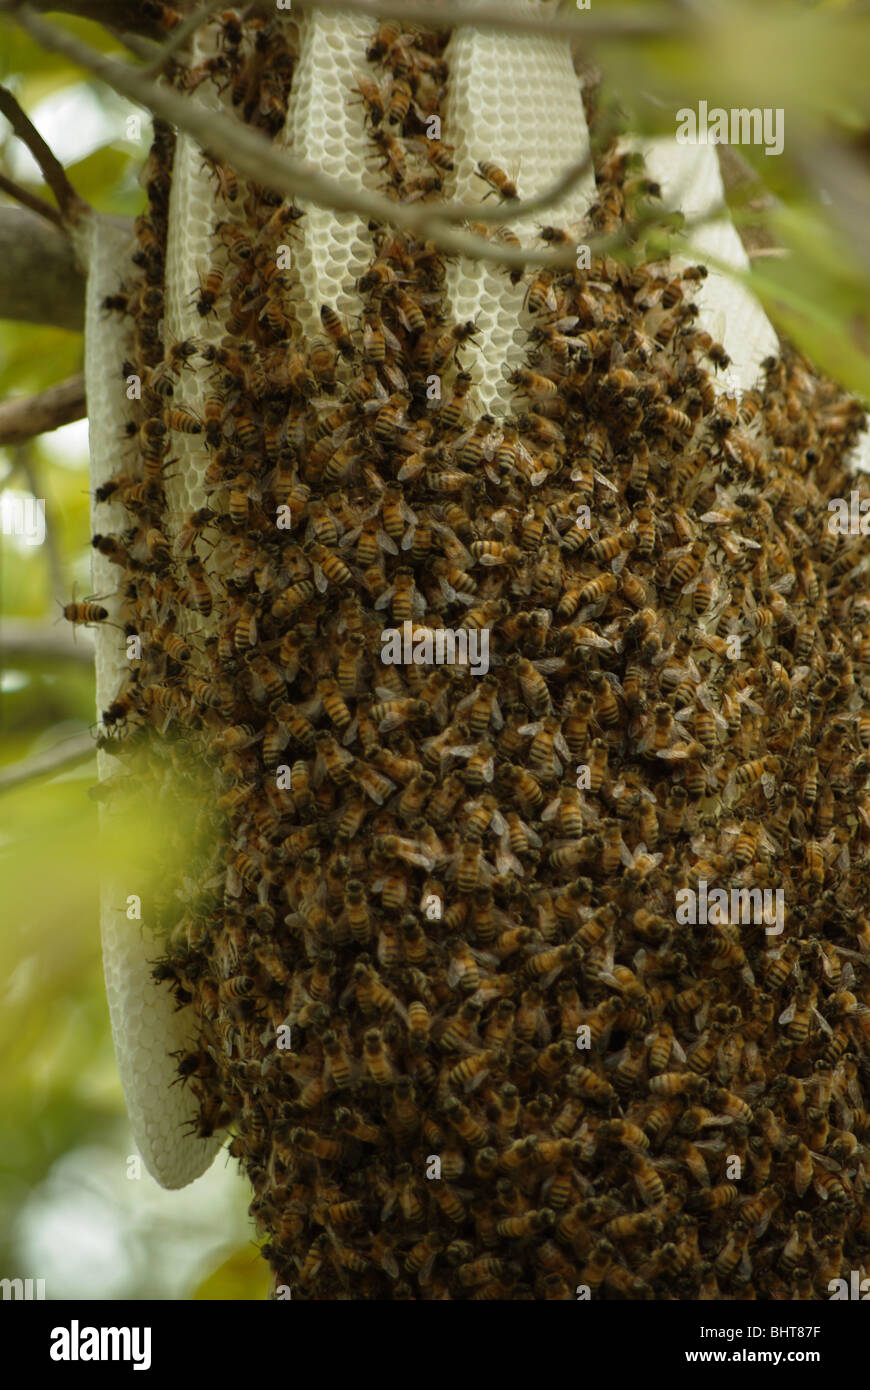 Nest of Wild Bees in the forest of Key Biscayne island (Miami area, USA) - Stock Image